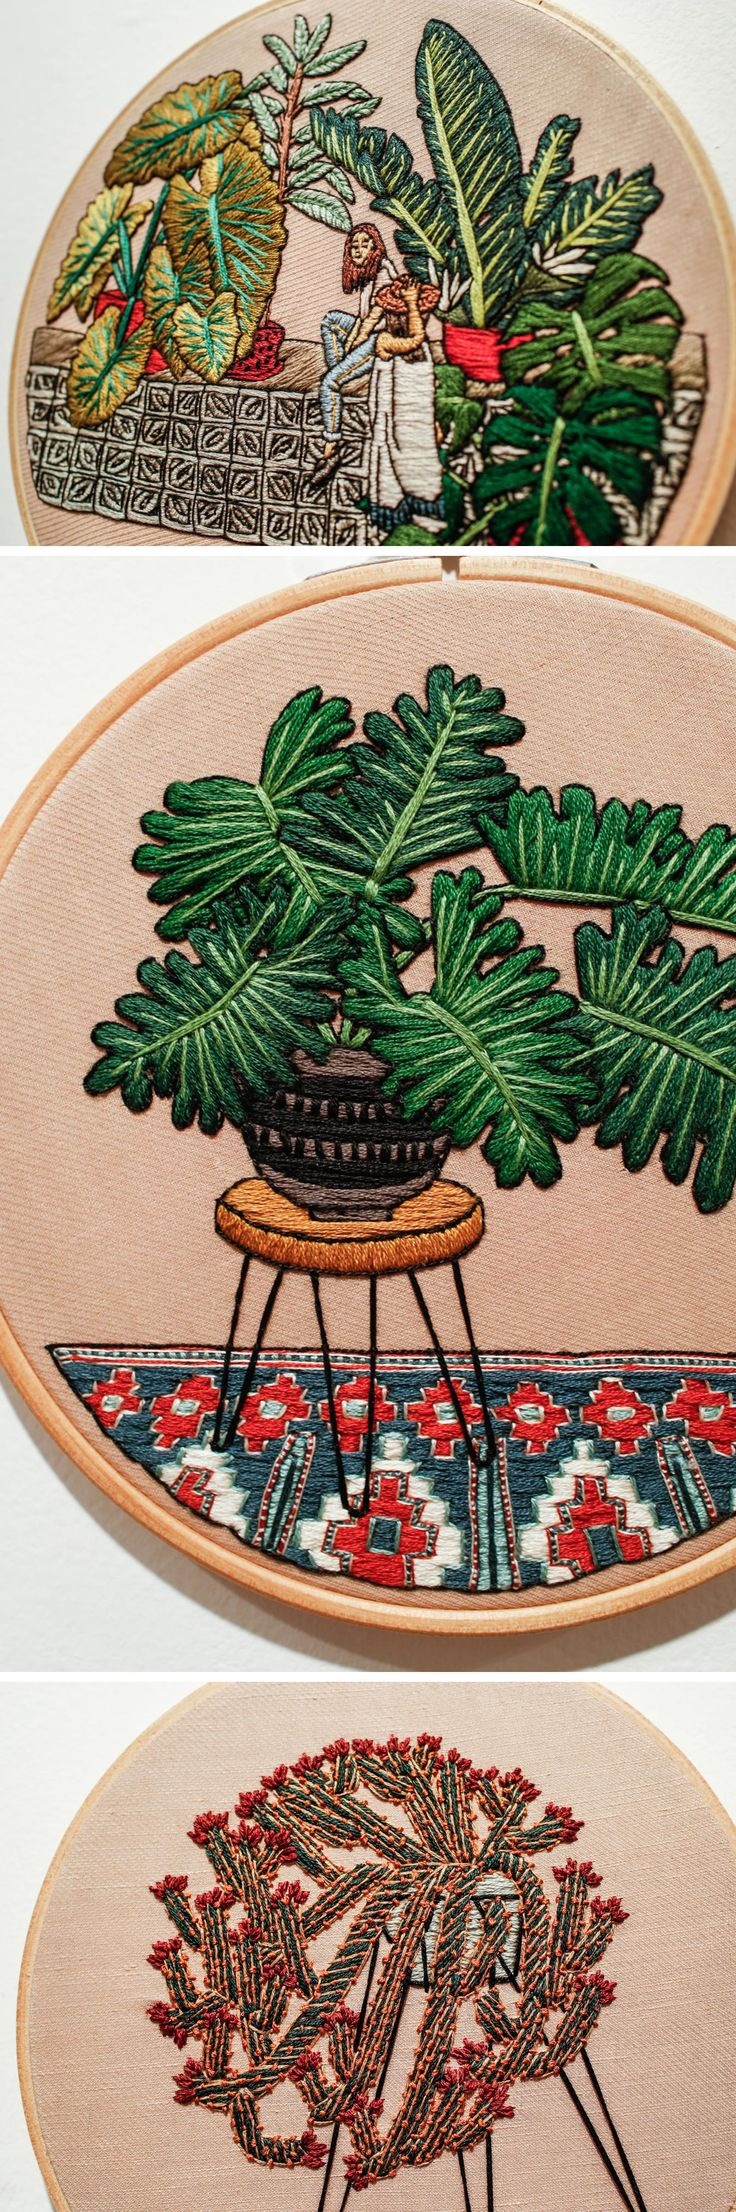 Embroidery by Sarah K. Benning // hoop art // craft